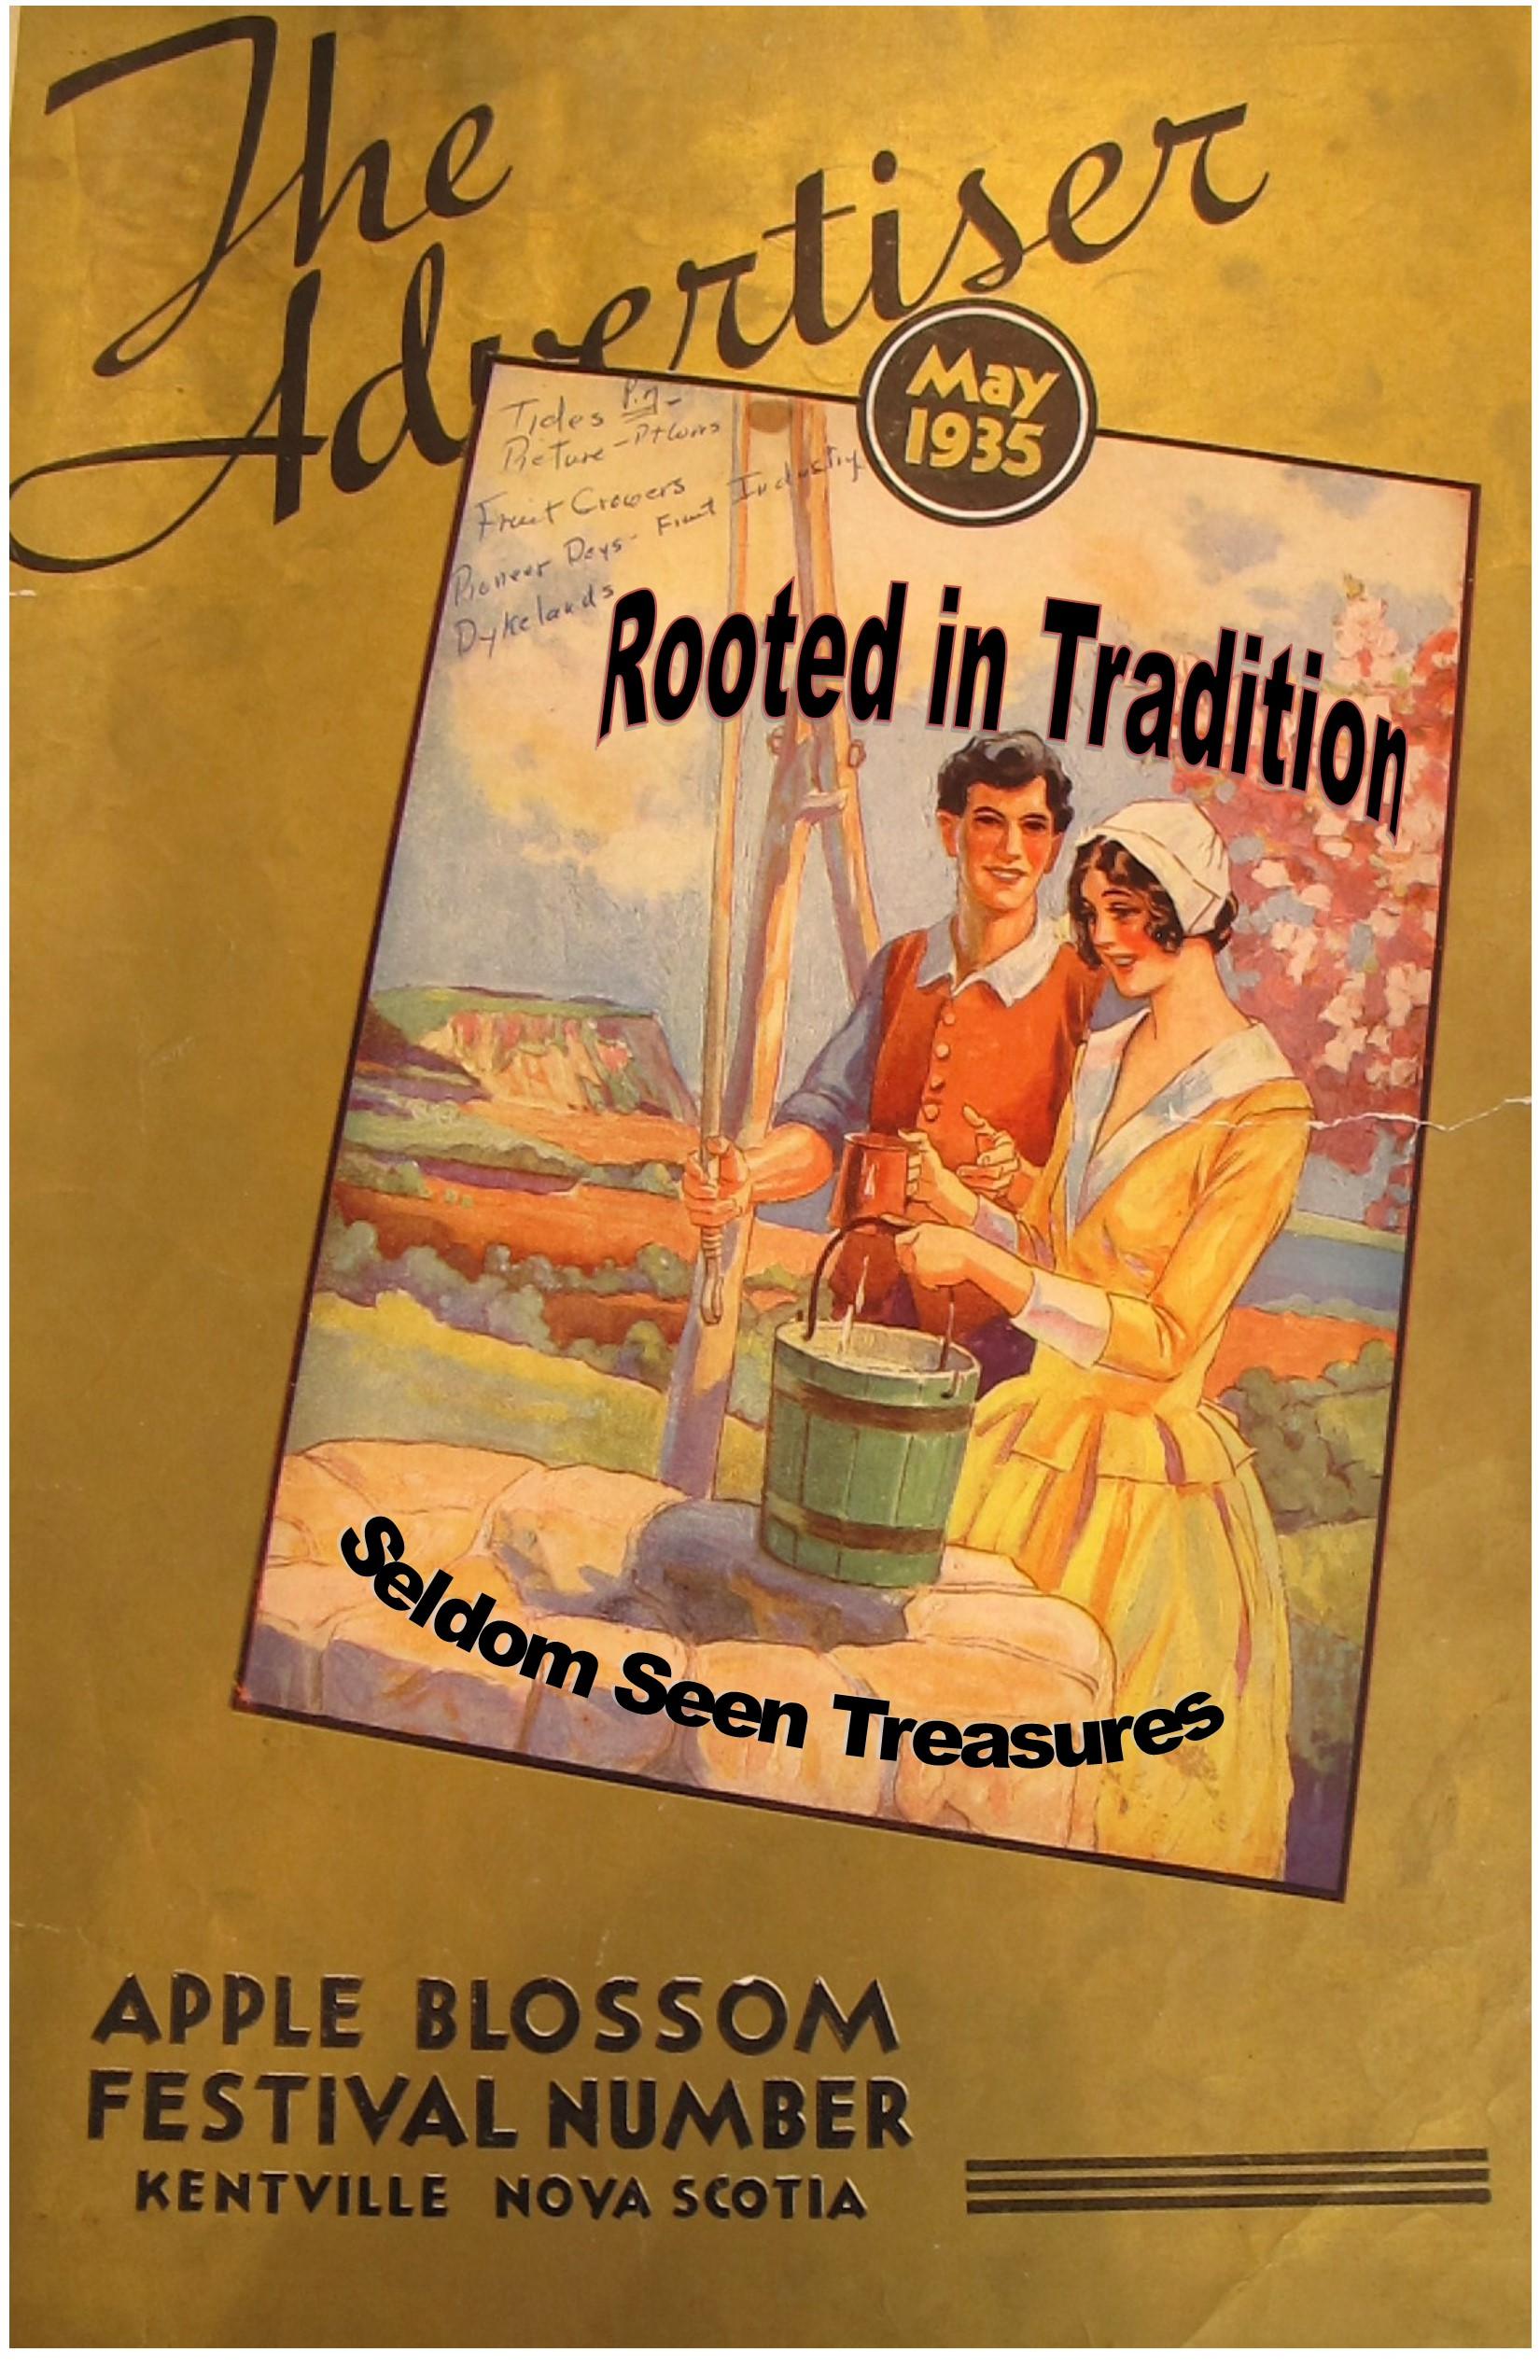 Rooted in Tradition